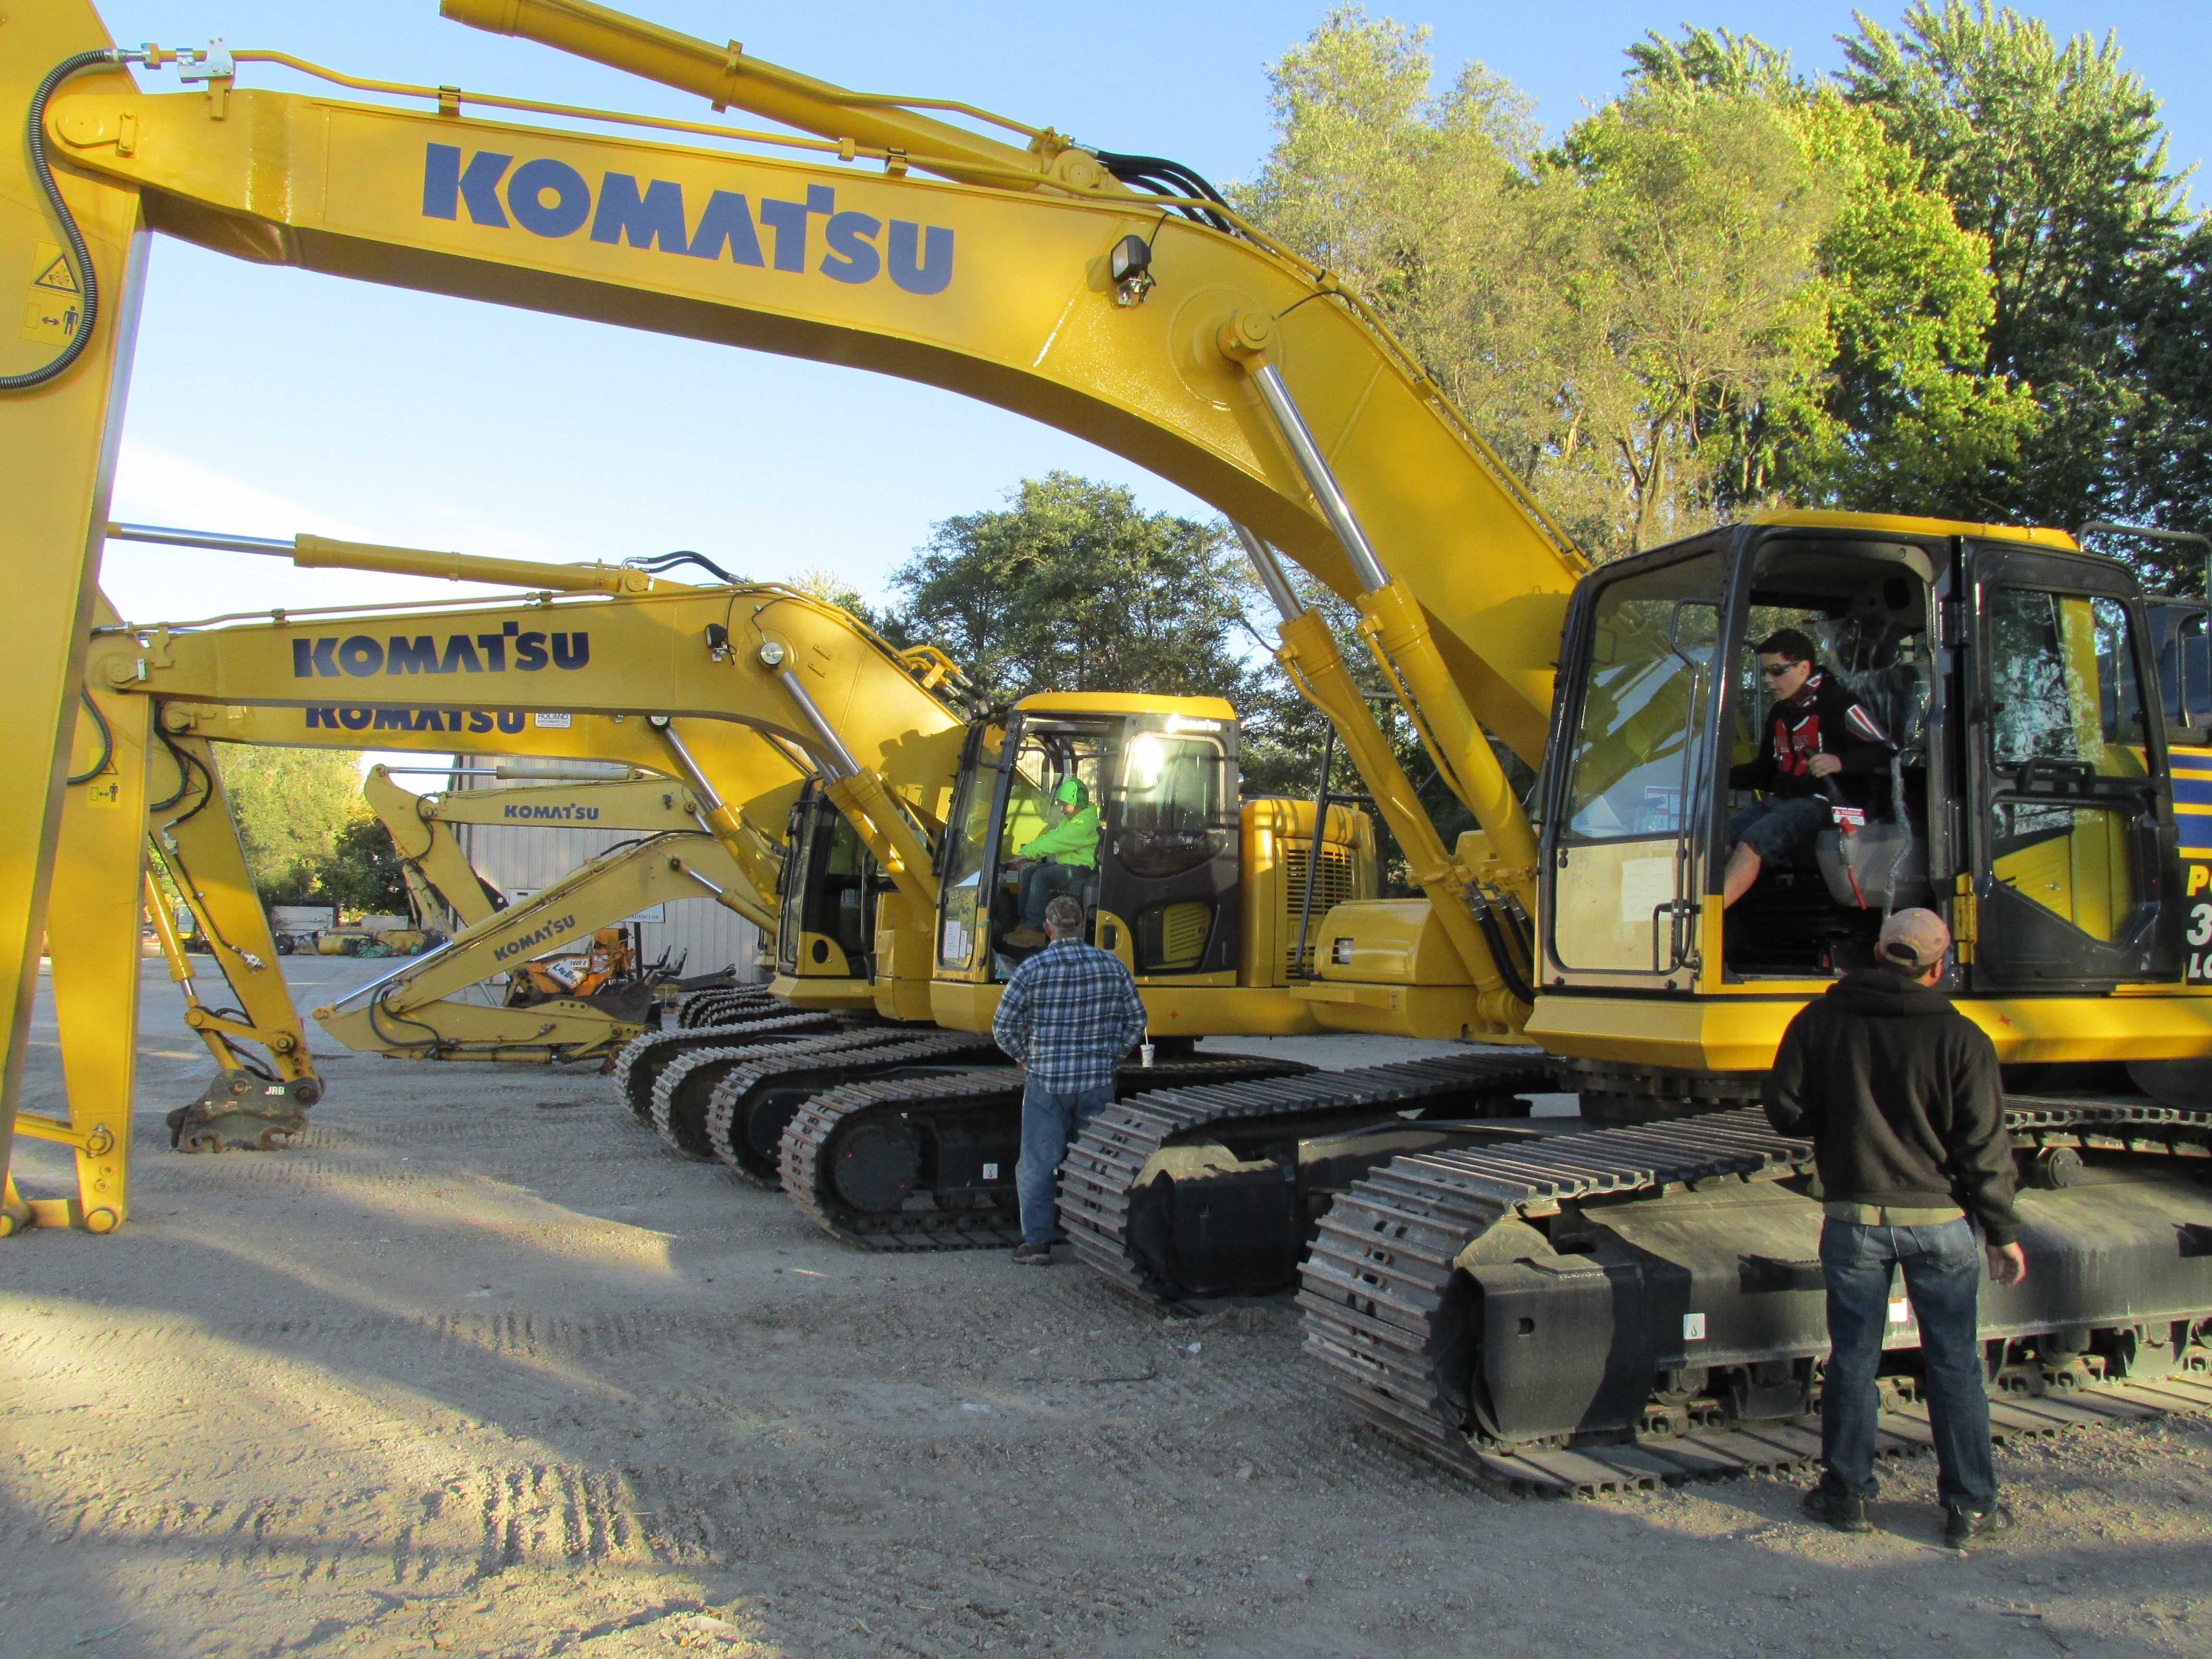 The next generation of customers get a feel for the Komatsu equipment availabe at Roland Machinery.-1